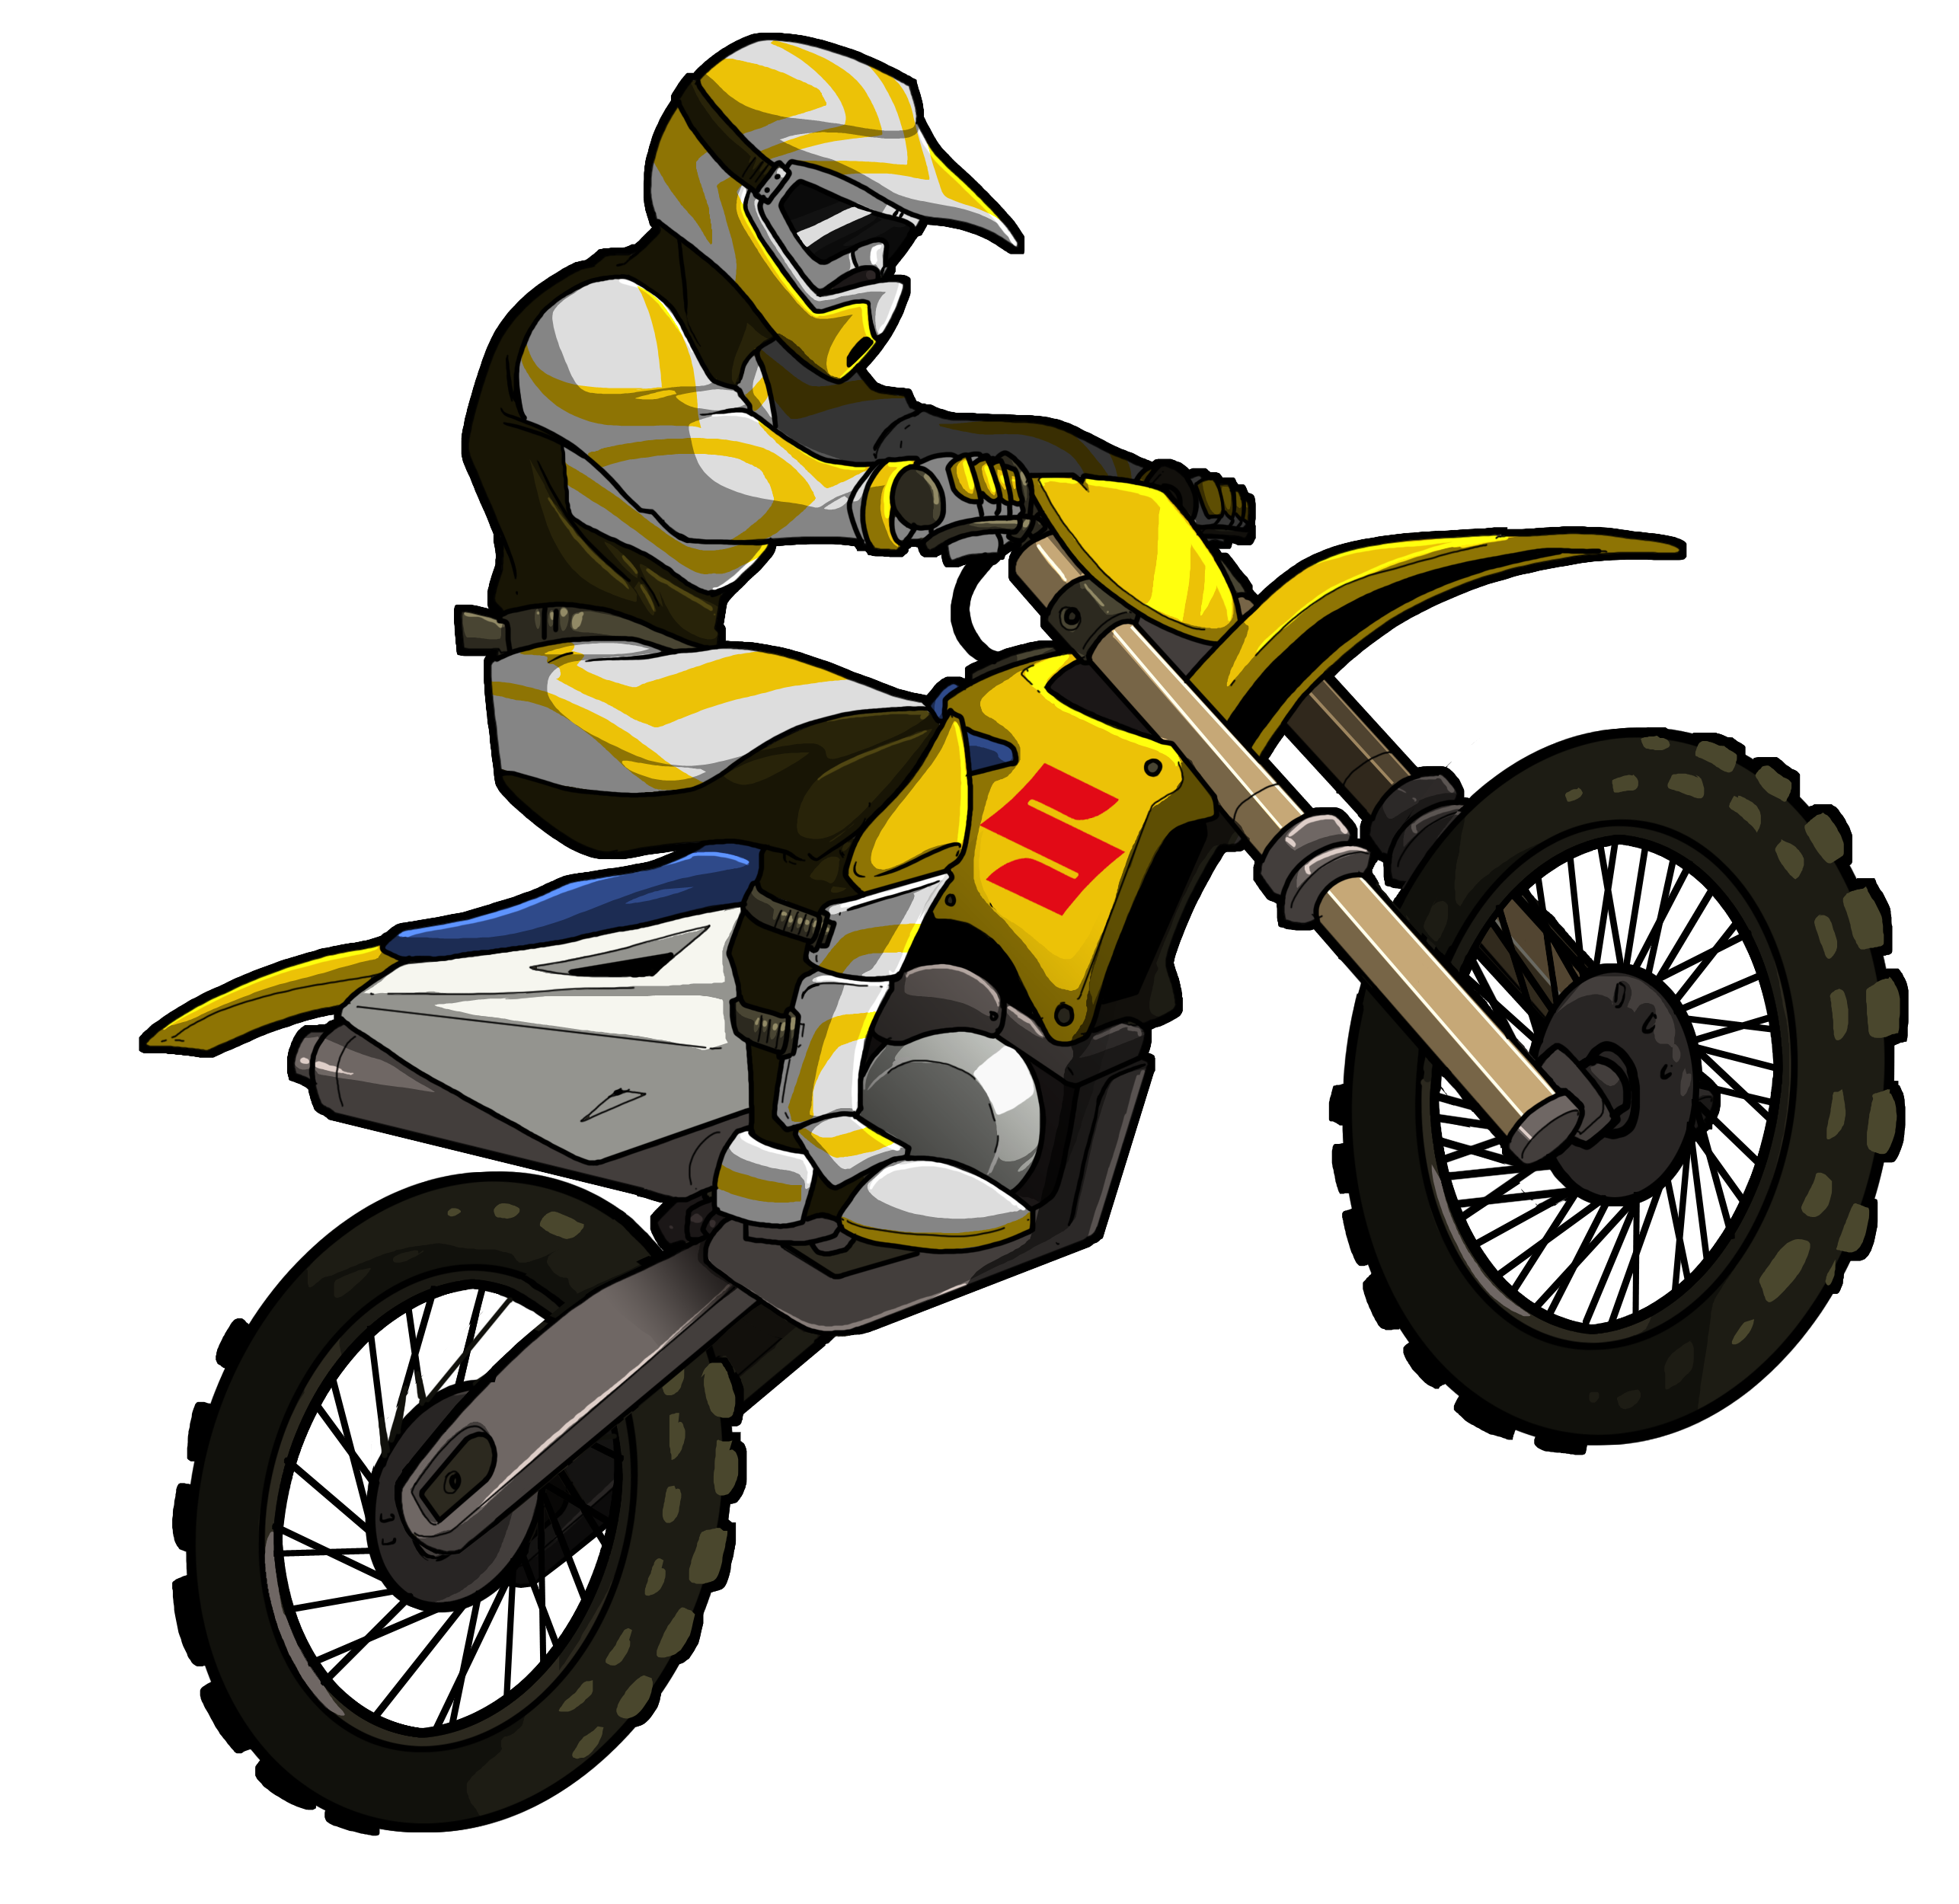 library Motocross PNG Images Transparent Free Download